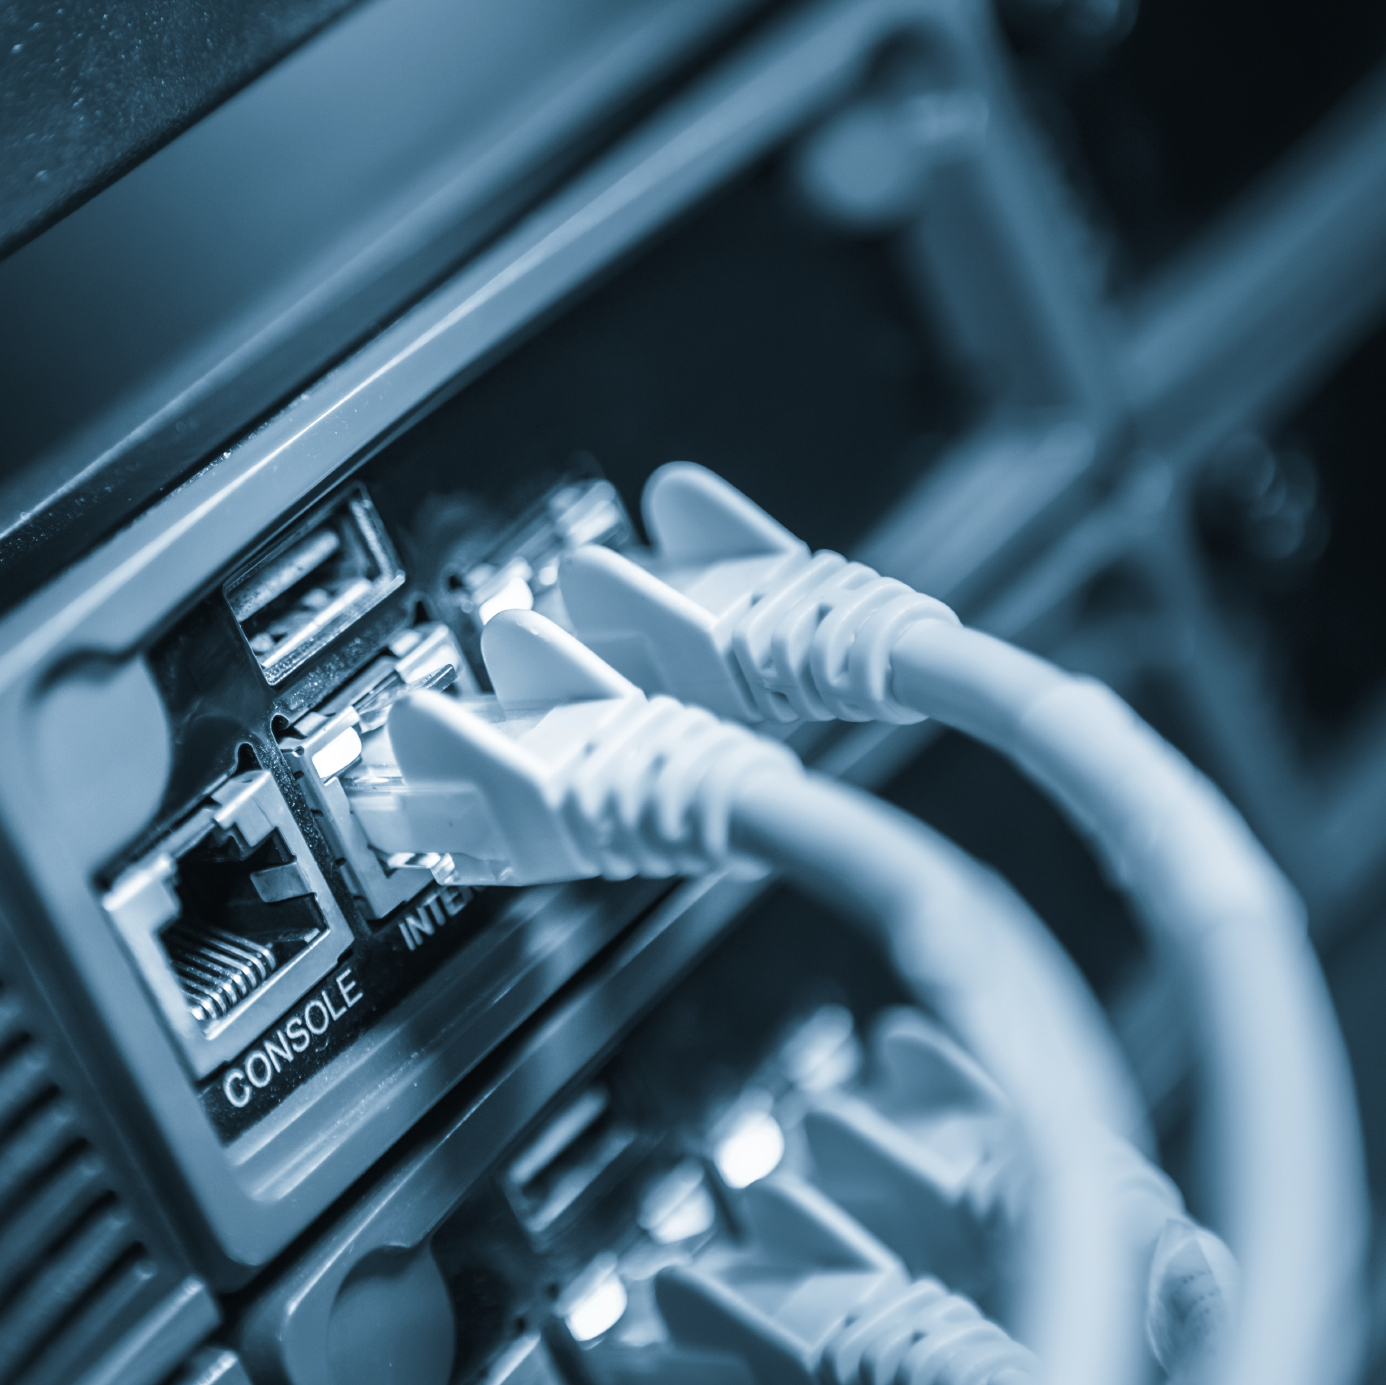 uk broadband internet cable connection online